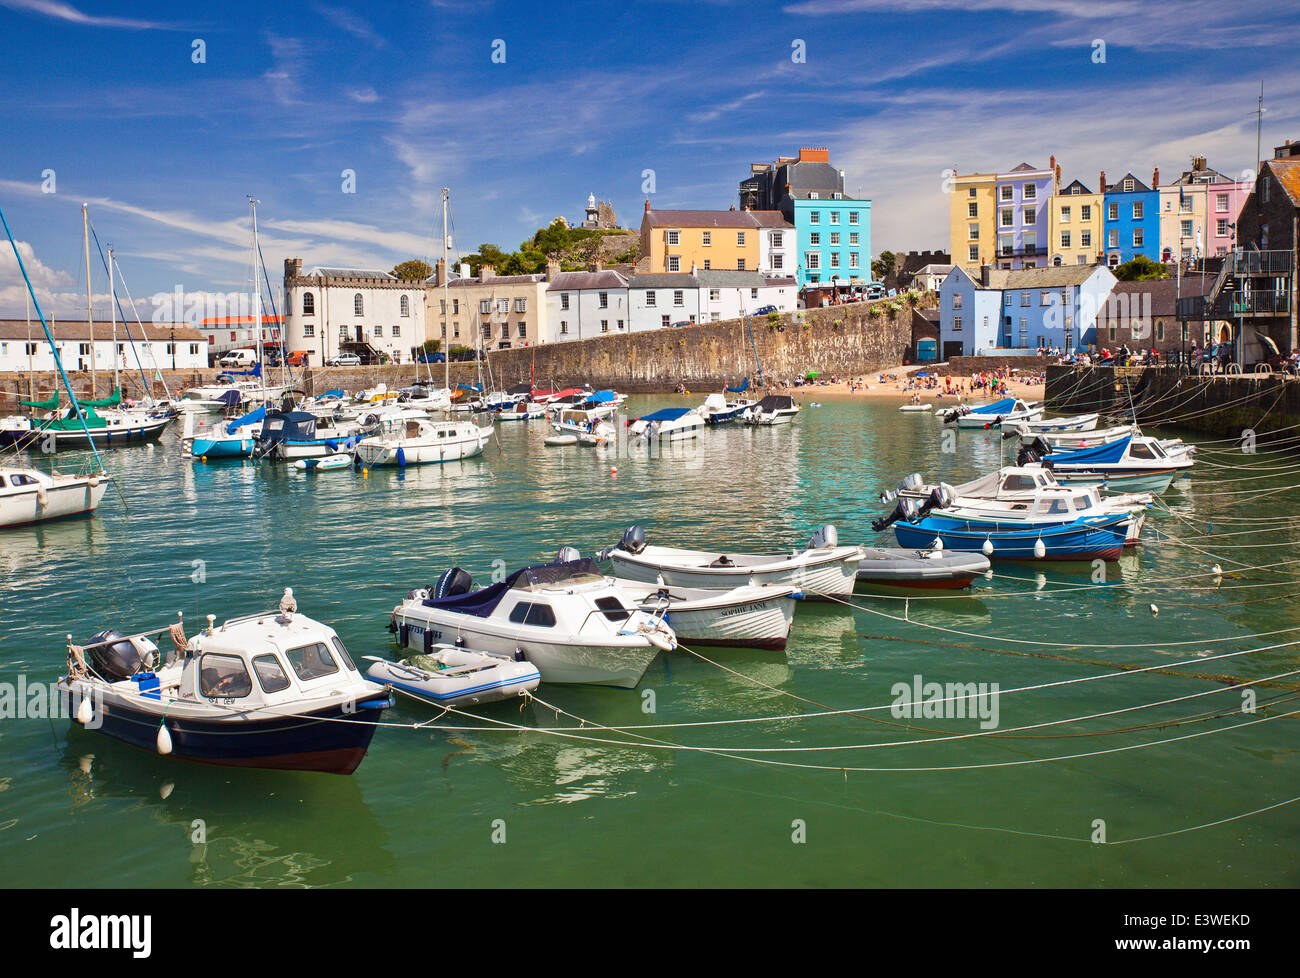 Tenby harbour. - Stock Image